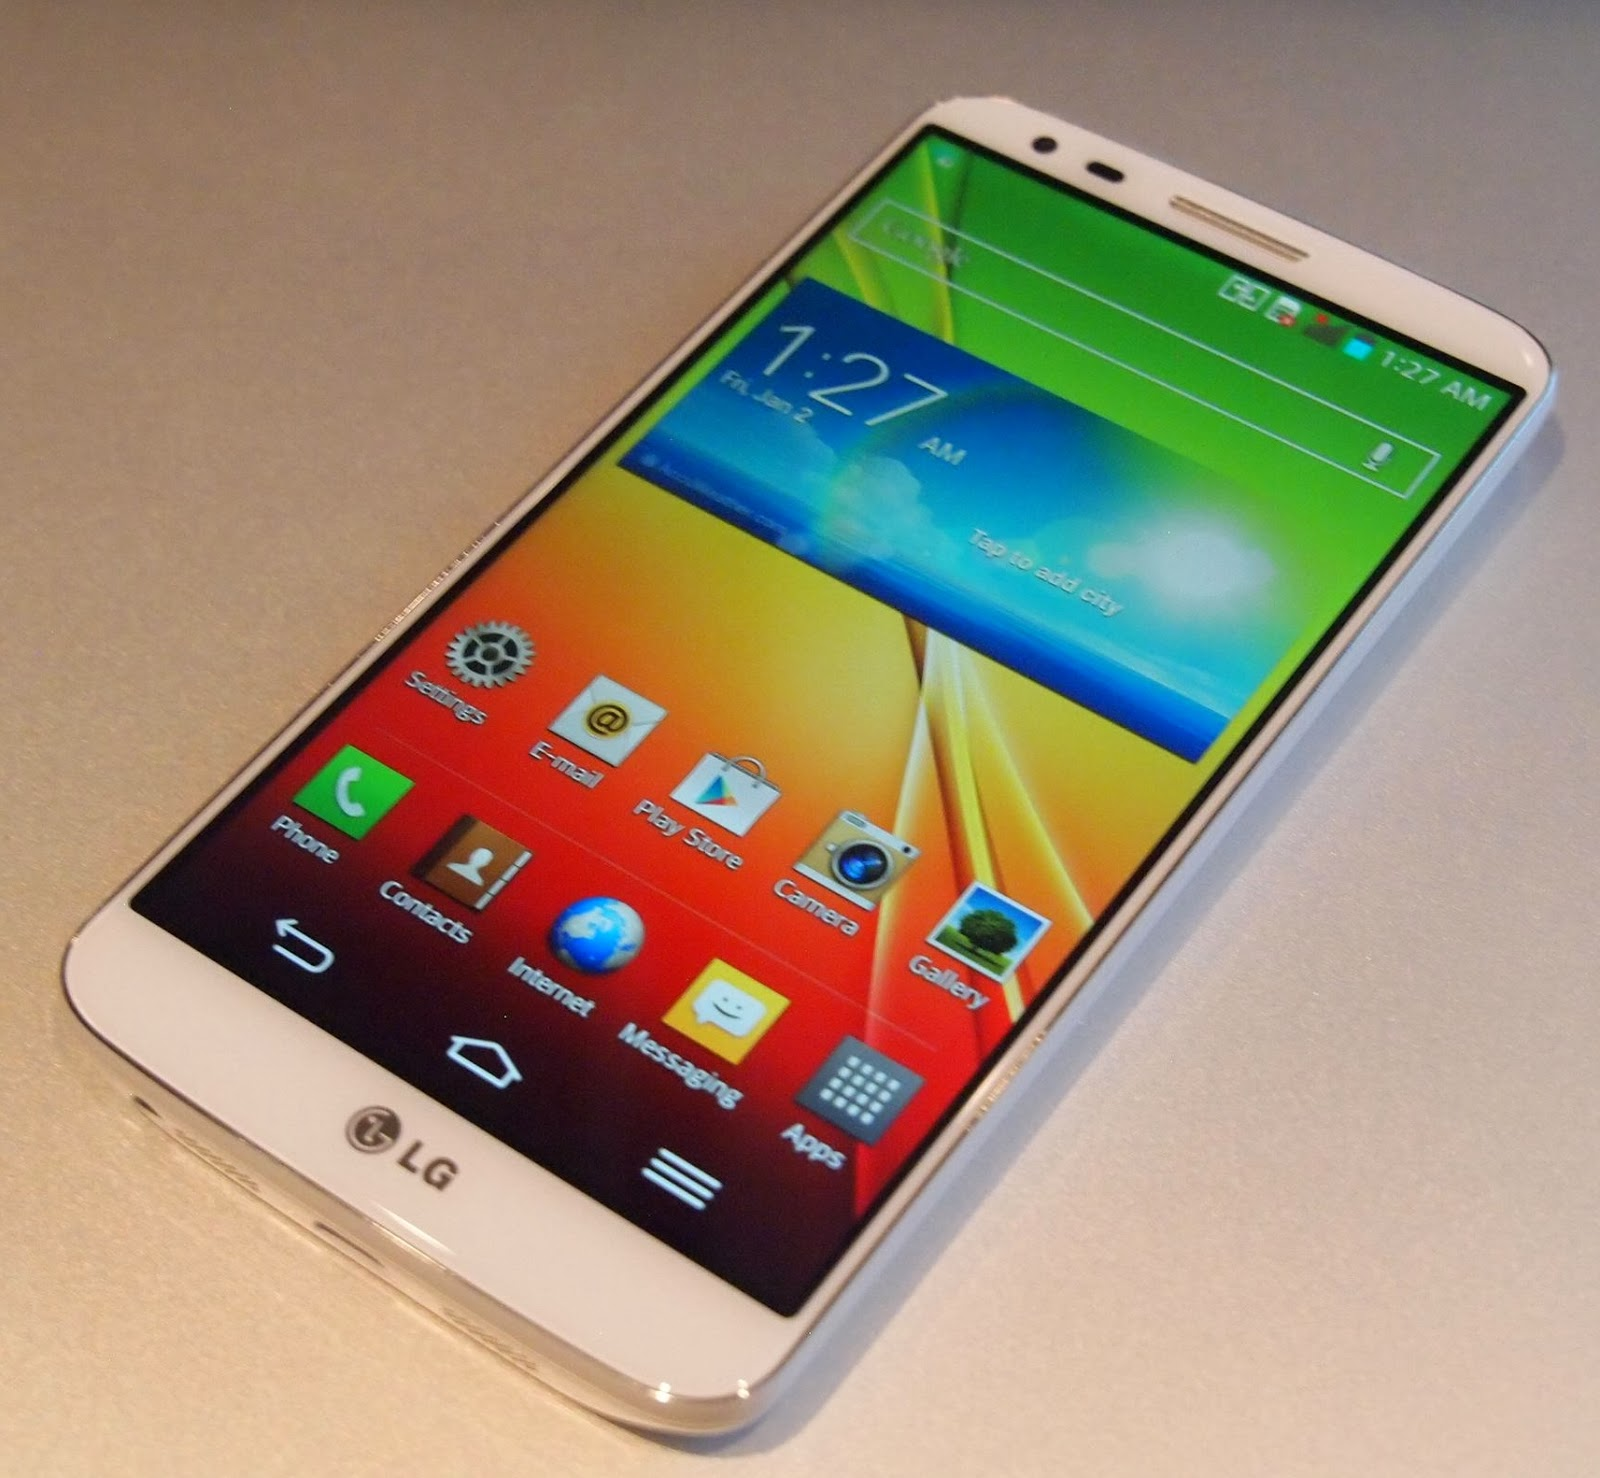 A New Smartphone In The Market LG G2